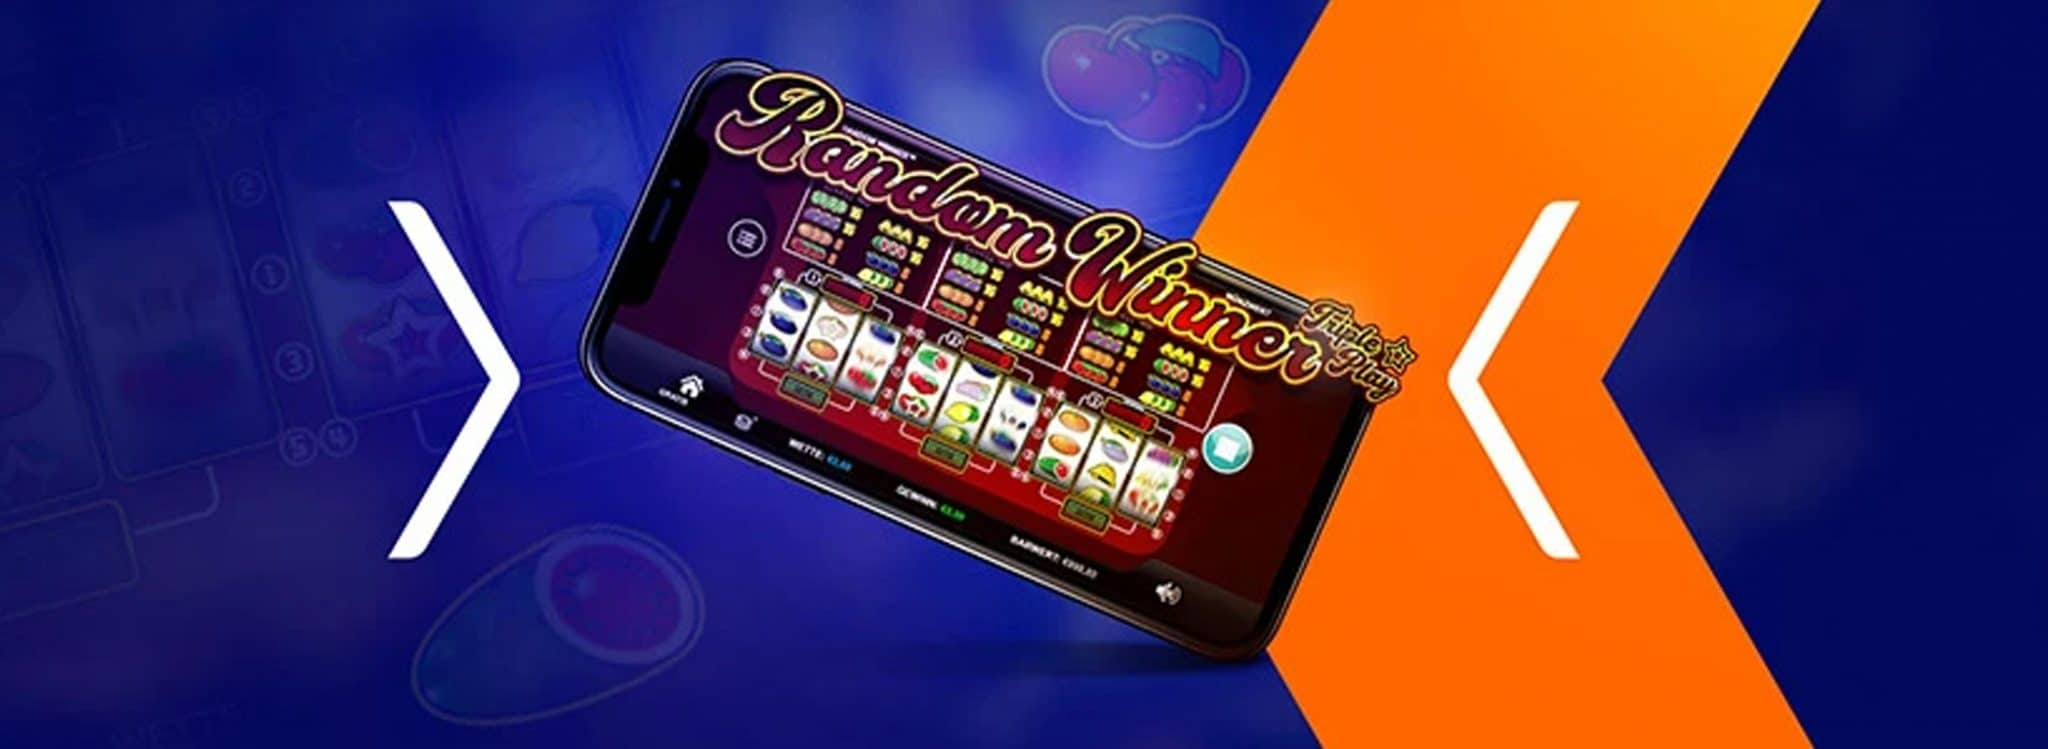 Claim Spins Every Week At The Betsson Free Spins Party! element01 - CasinoTop